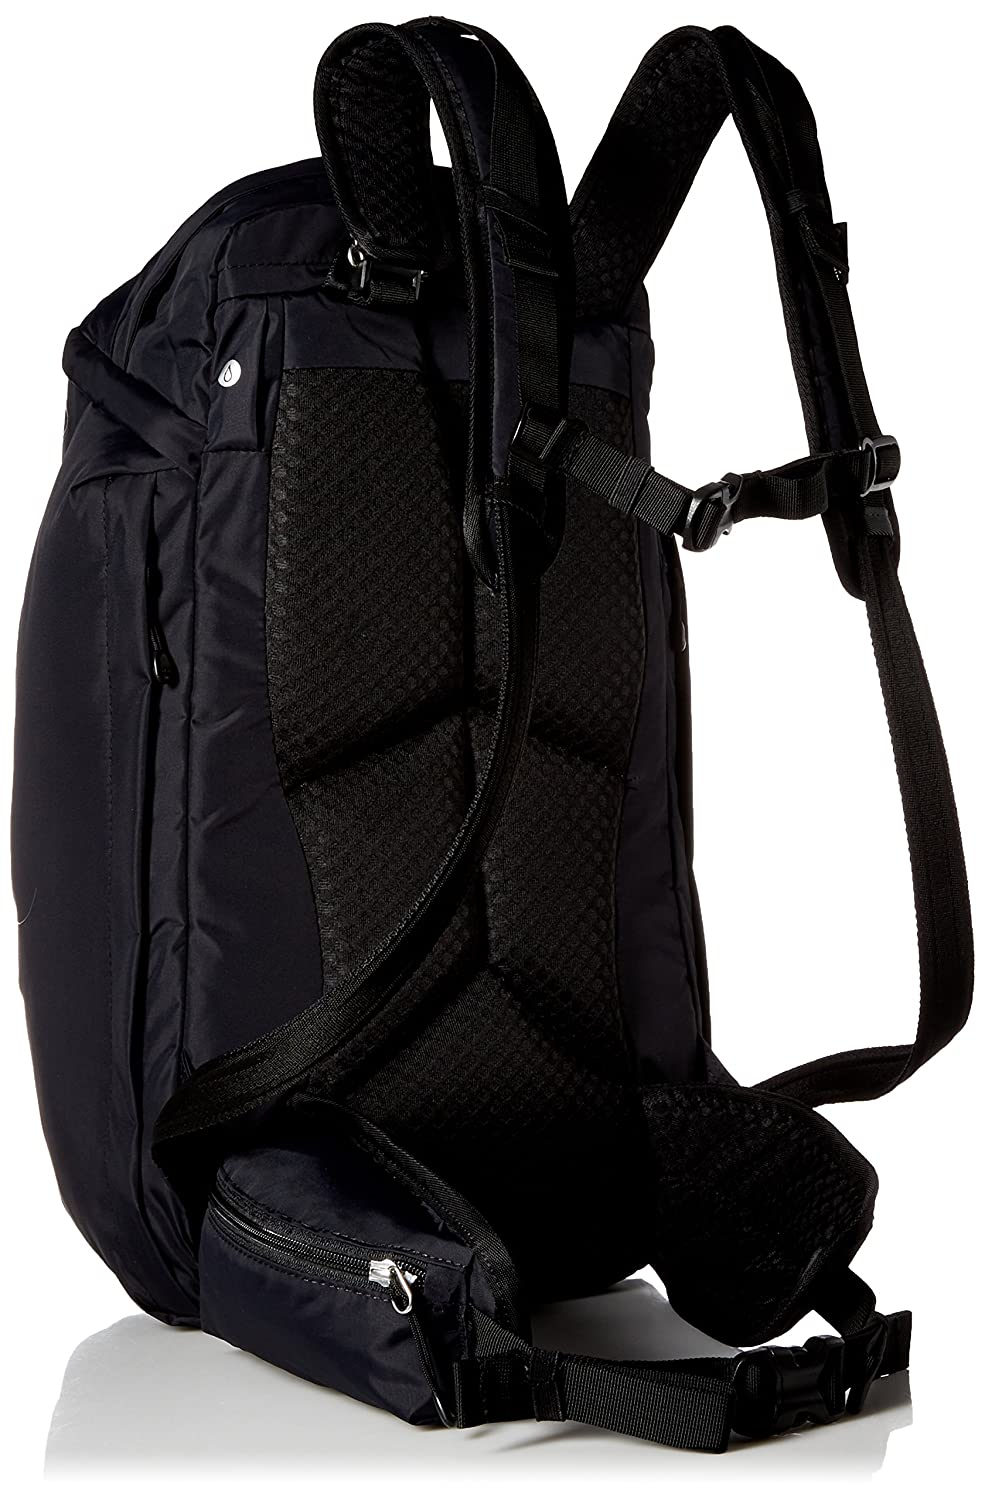 Pacsafe PAC60305 Vibe Backpack Mochila Tipo Casual, 52 cm, 28 litros, Negro: Amazon.es: Equipaje